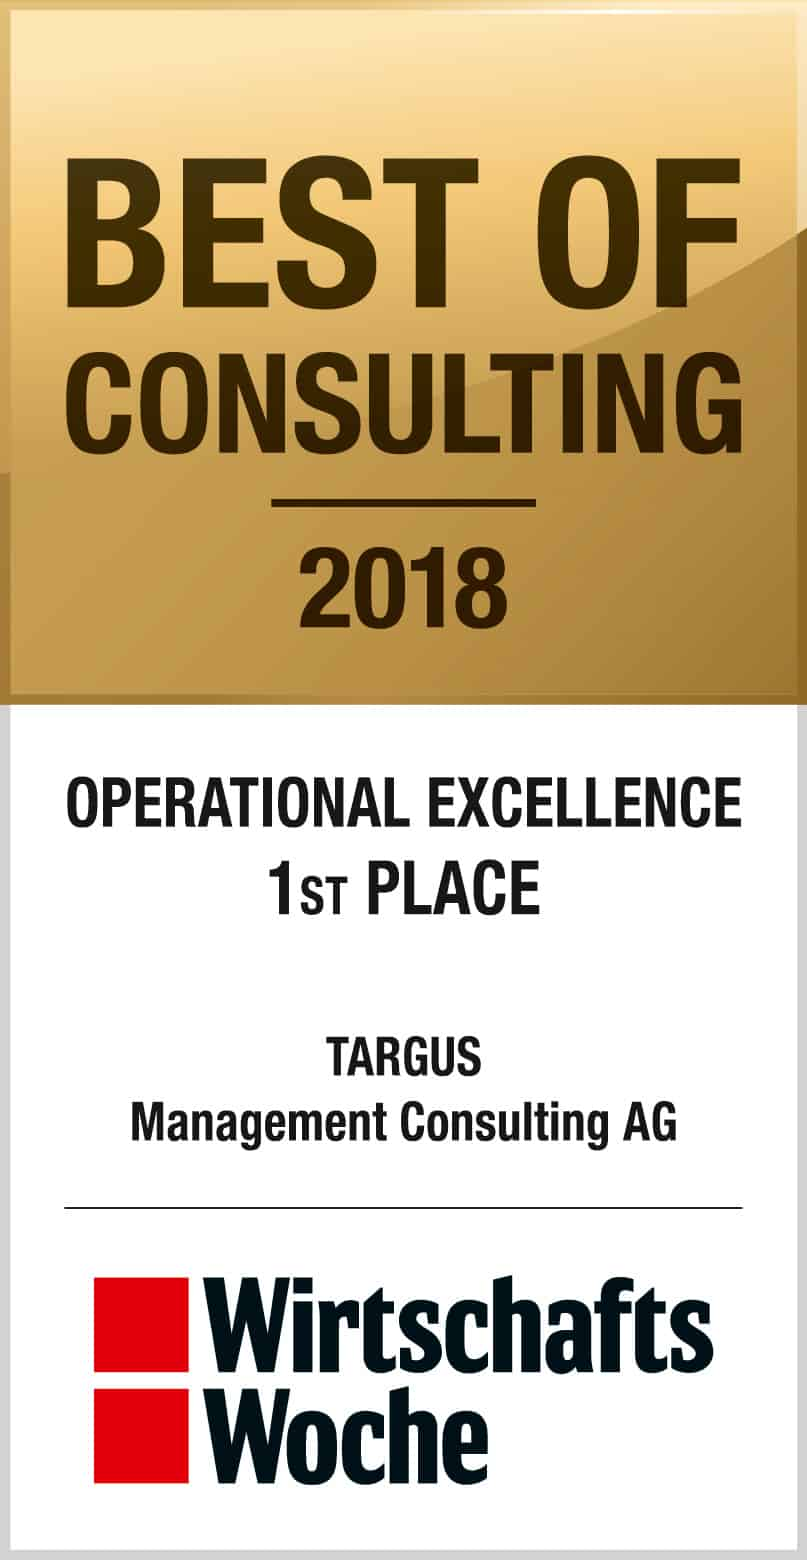 WiWo BOC 2018 Operational Excellence TARGUS Management Consulting AG engl - Home